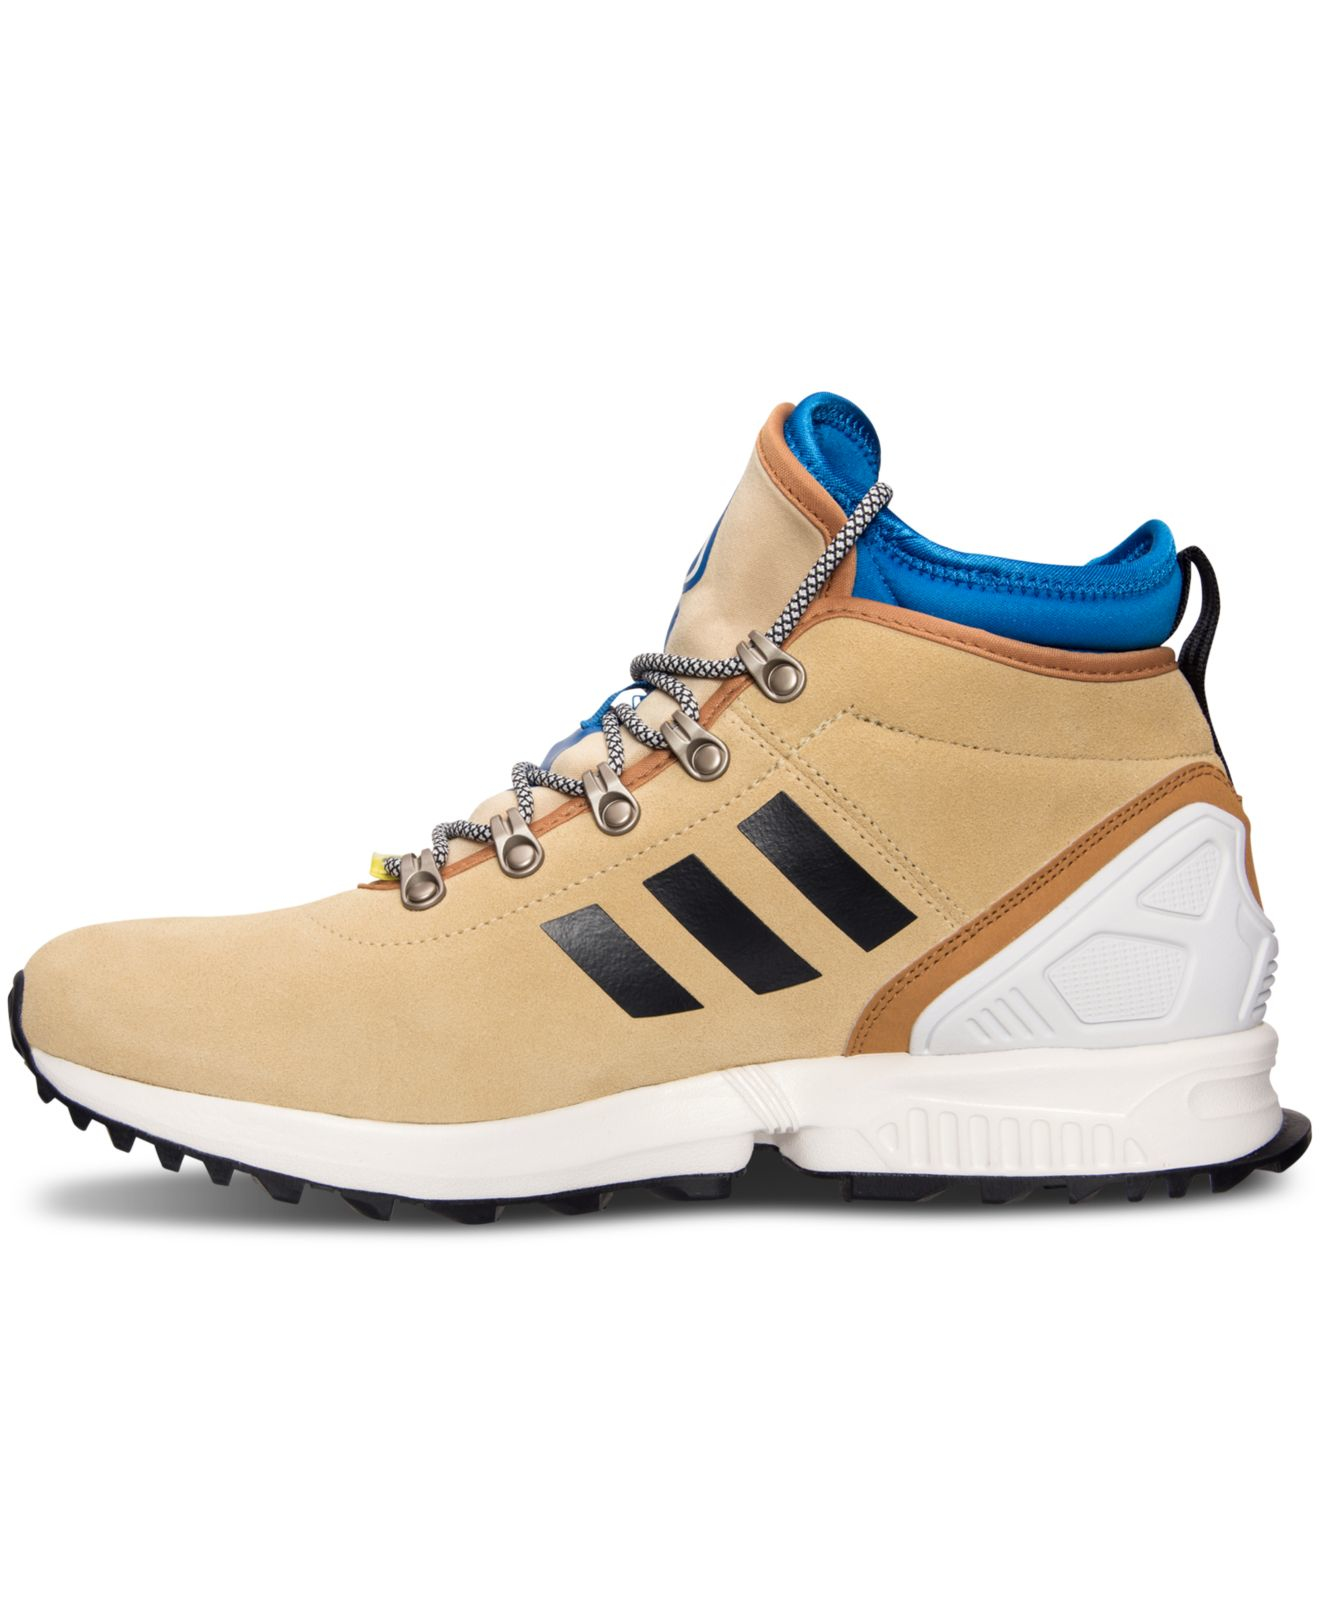 best sneakers e8c34 3a042 ... purchase trainers 0ea92 5ef55 inexpensive lyst adidas mens originals zx  flux winter sneakerboots from 69364 e2dcc